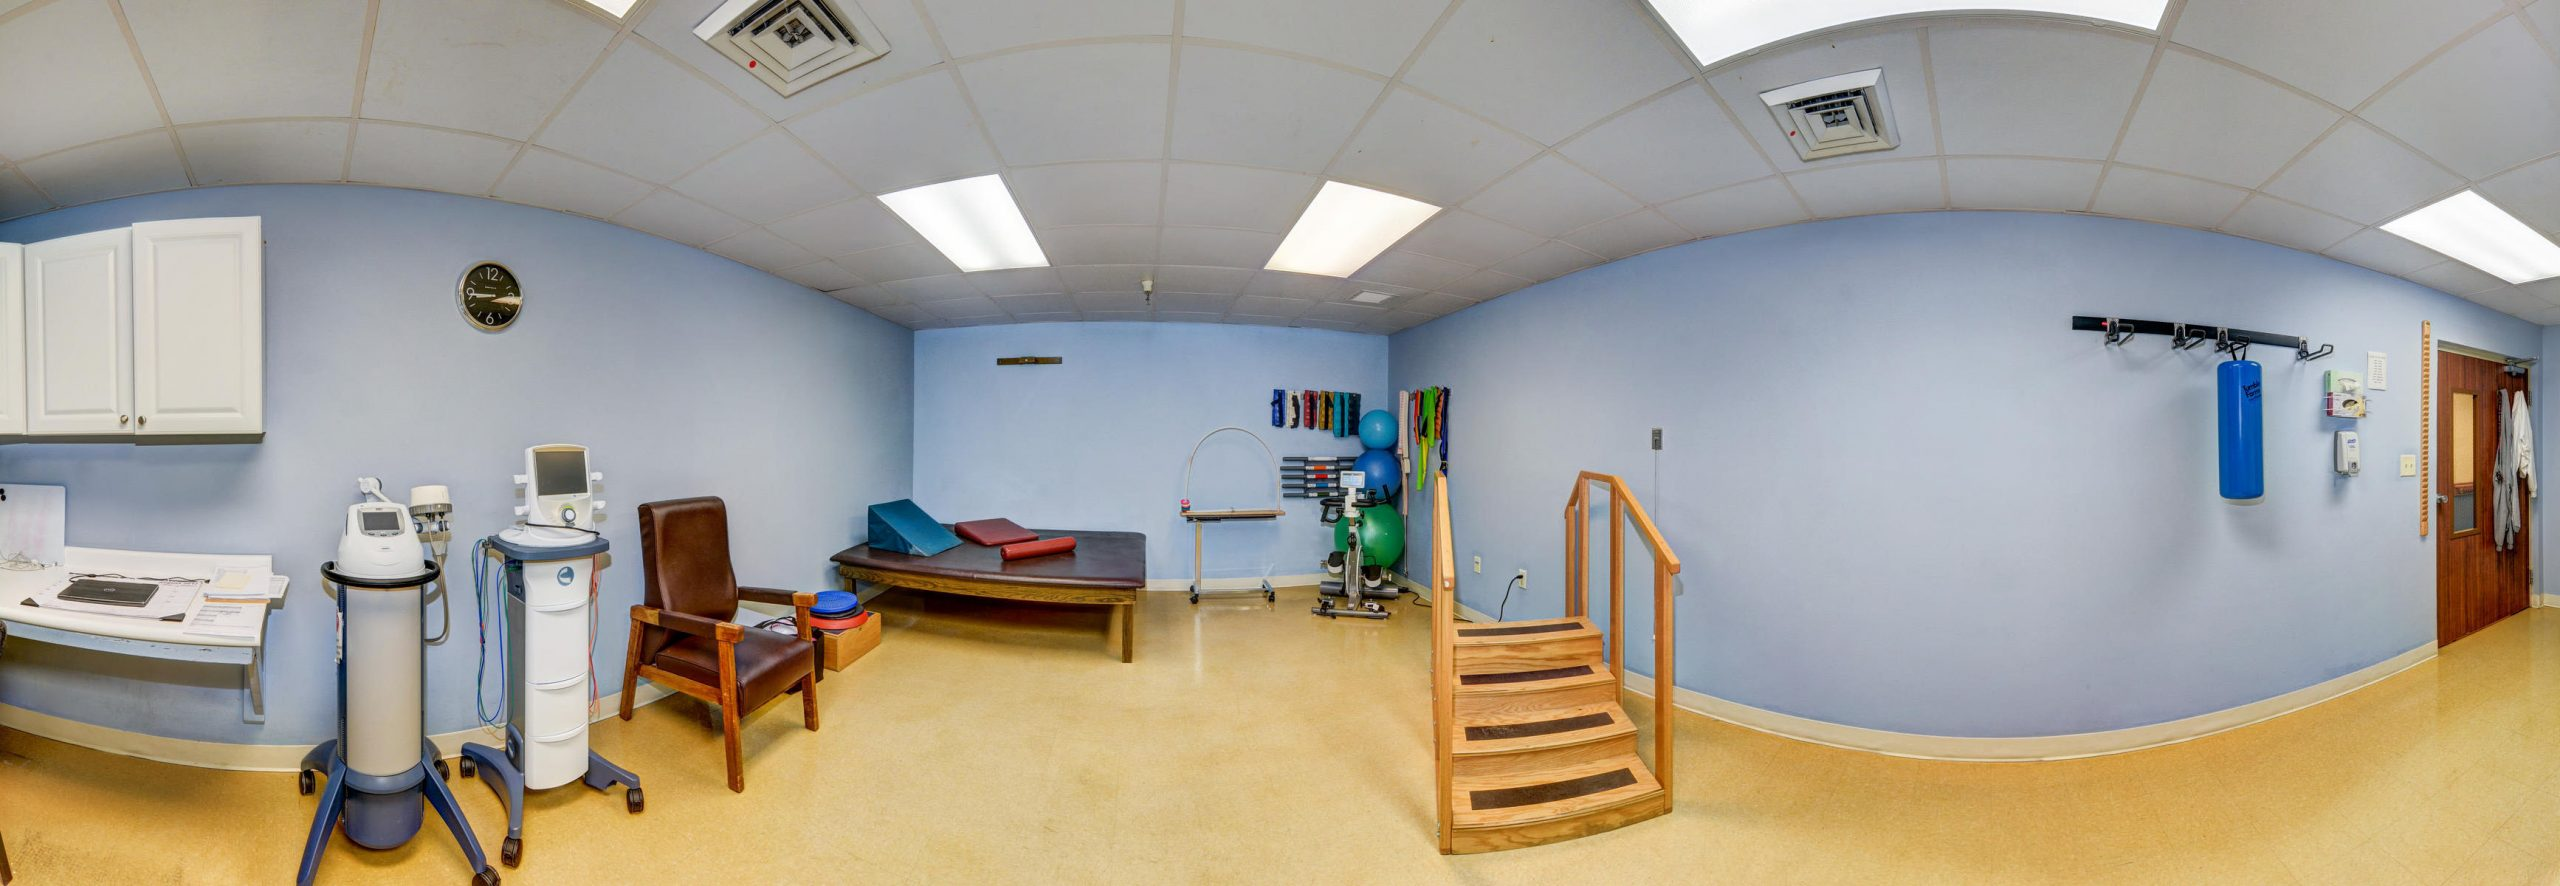 Panoramic view of Stonerise Wellsburg Therapy and Rehabilitation room with equipment